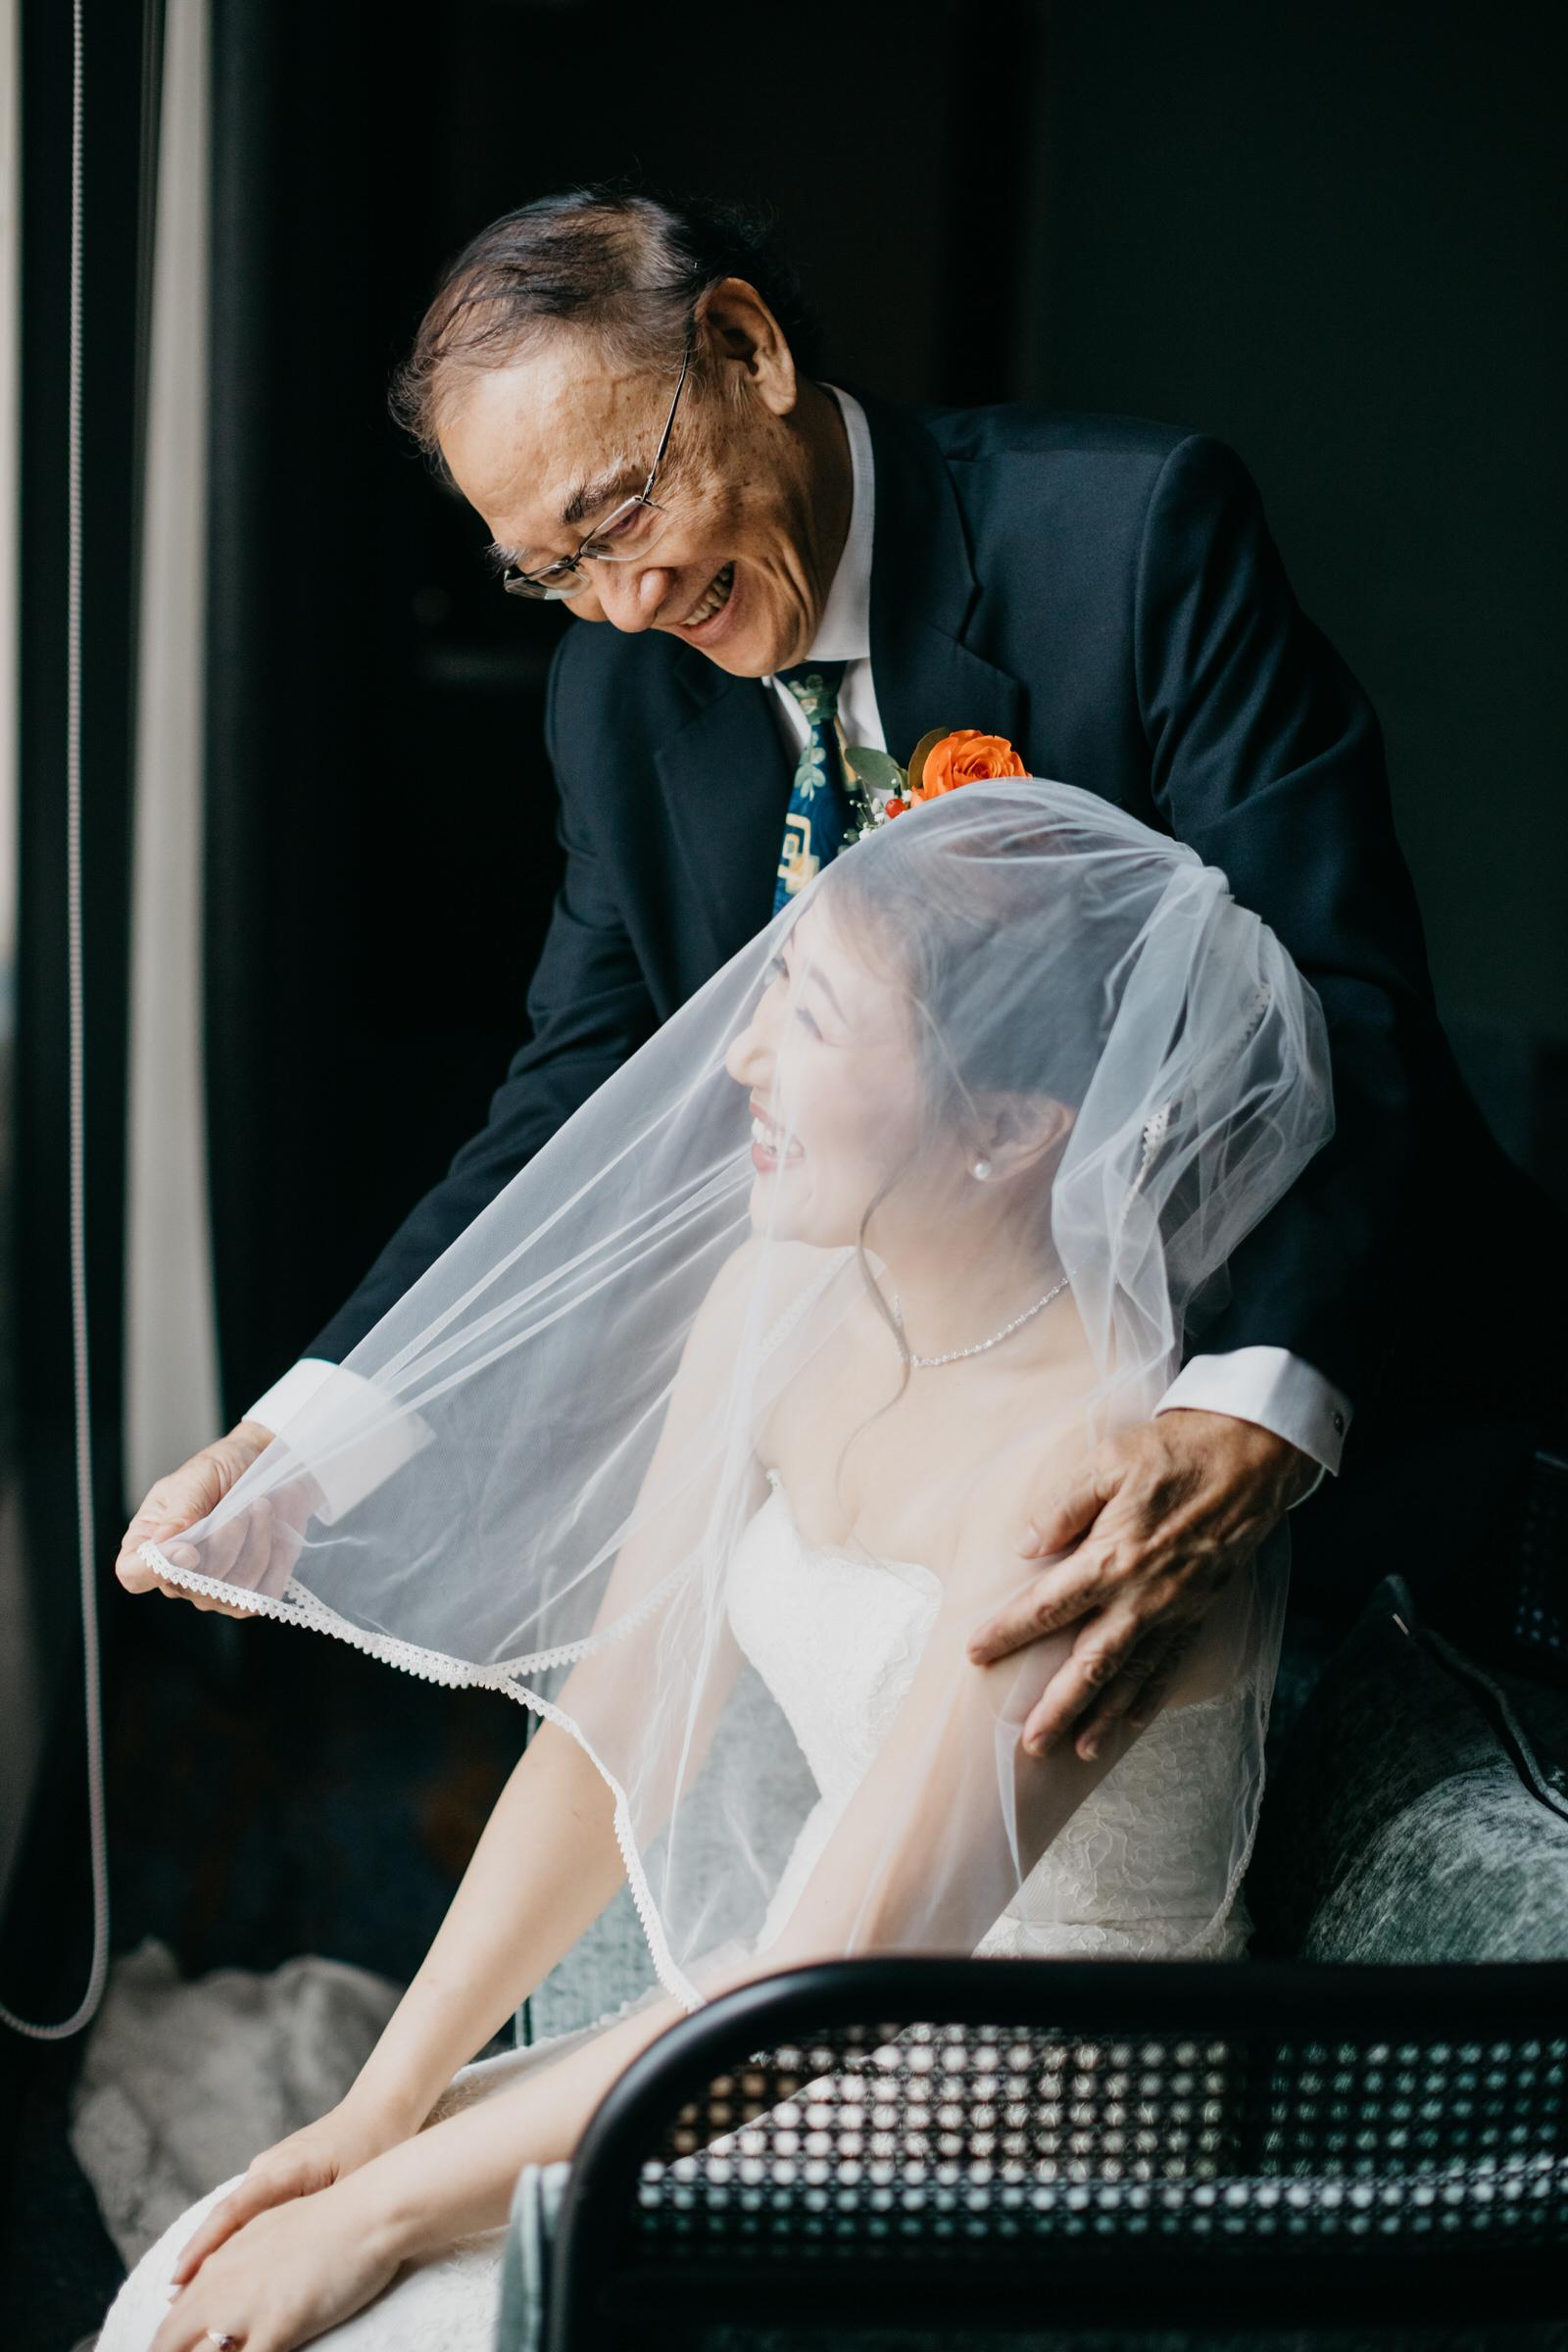 Father Vieling on Bride A Rooftop Poolside Wedding at Hotel Stripes Kuala Lumpur MCO2.0 Cliff Choong Photography Malaysia Covid19 ROM Bride Make Up Getting Ready